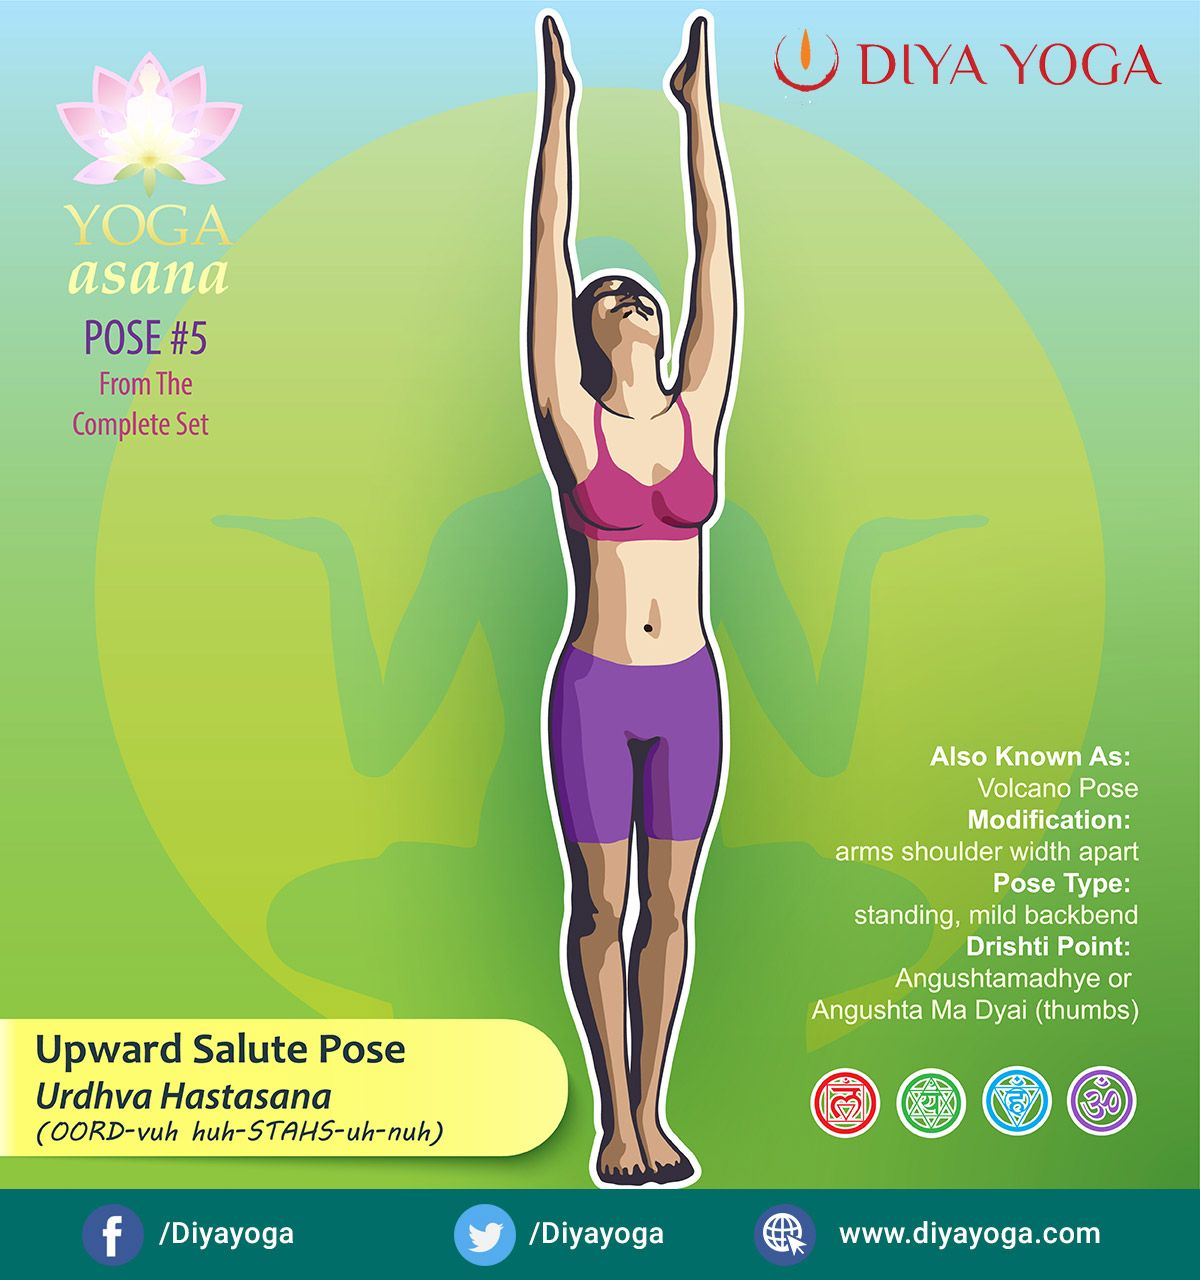 Urdhva Hastasana Or The Upward Salute Is The Sanskrit Way Of Saying Throw In 2020 200 Hour Yoga Teacher Training Yoga Teacher Training Course Yoga Teacher Training